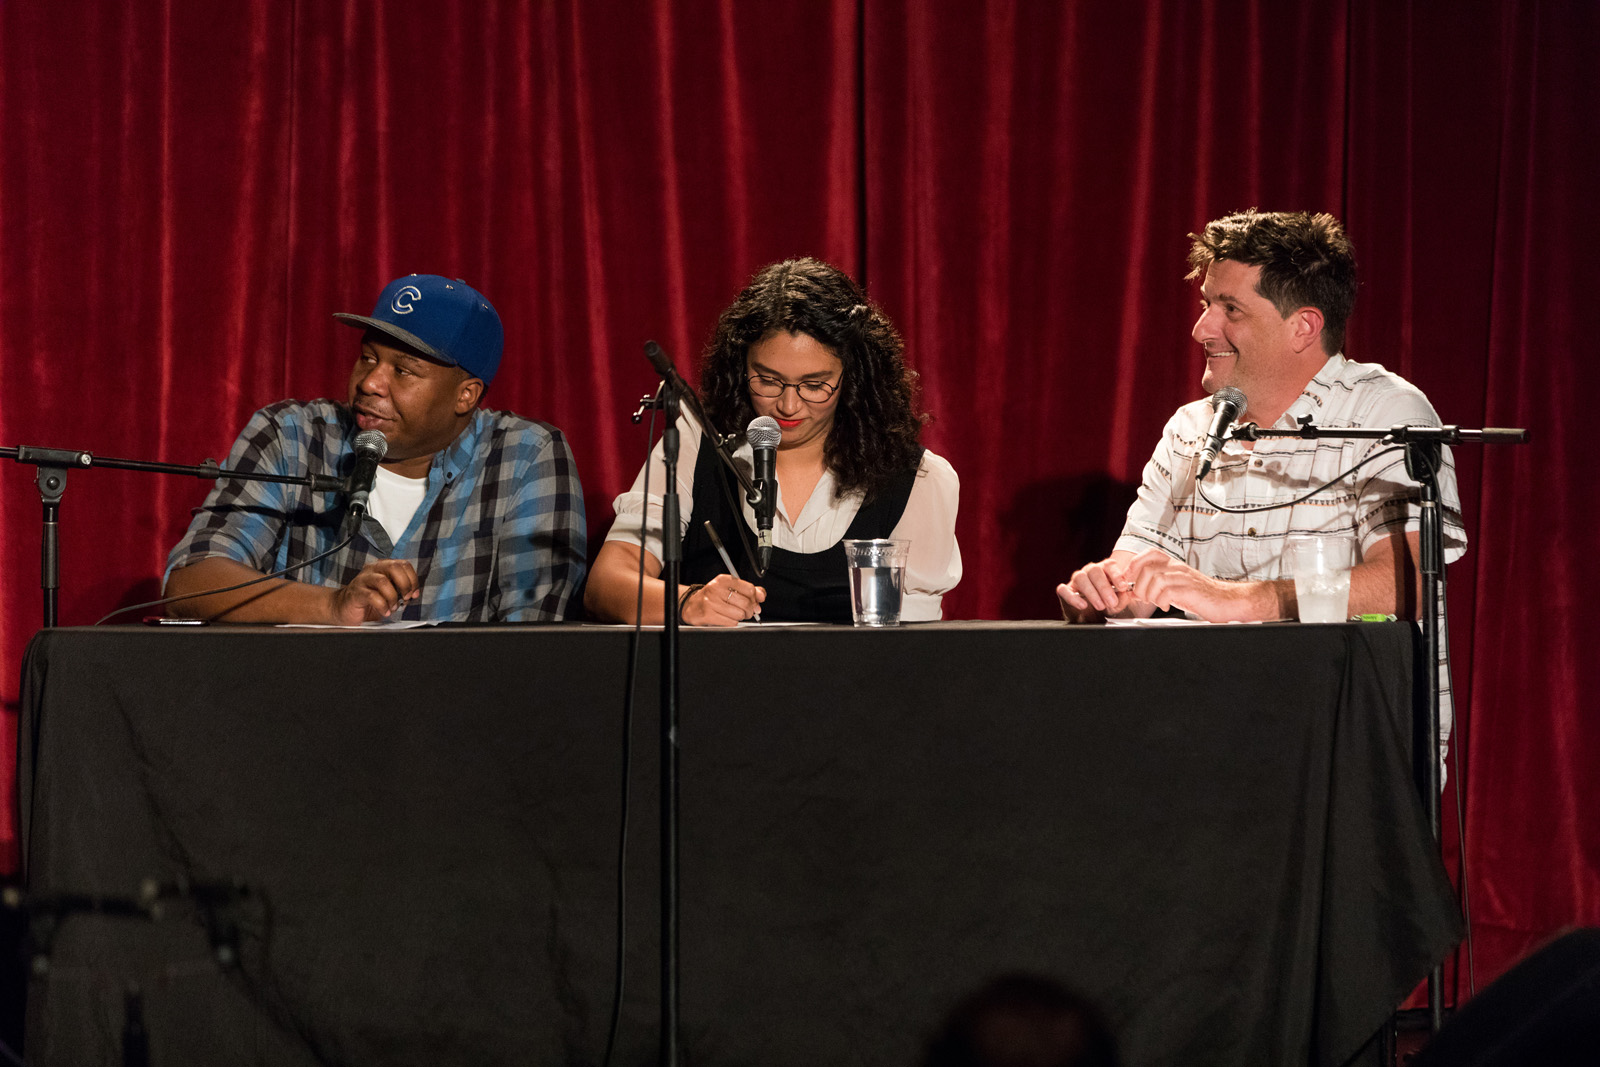 roy wood jr + sarah kay + michael showalter